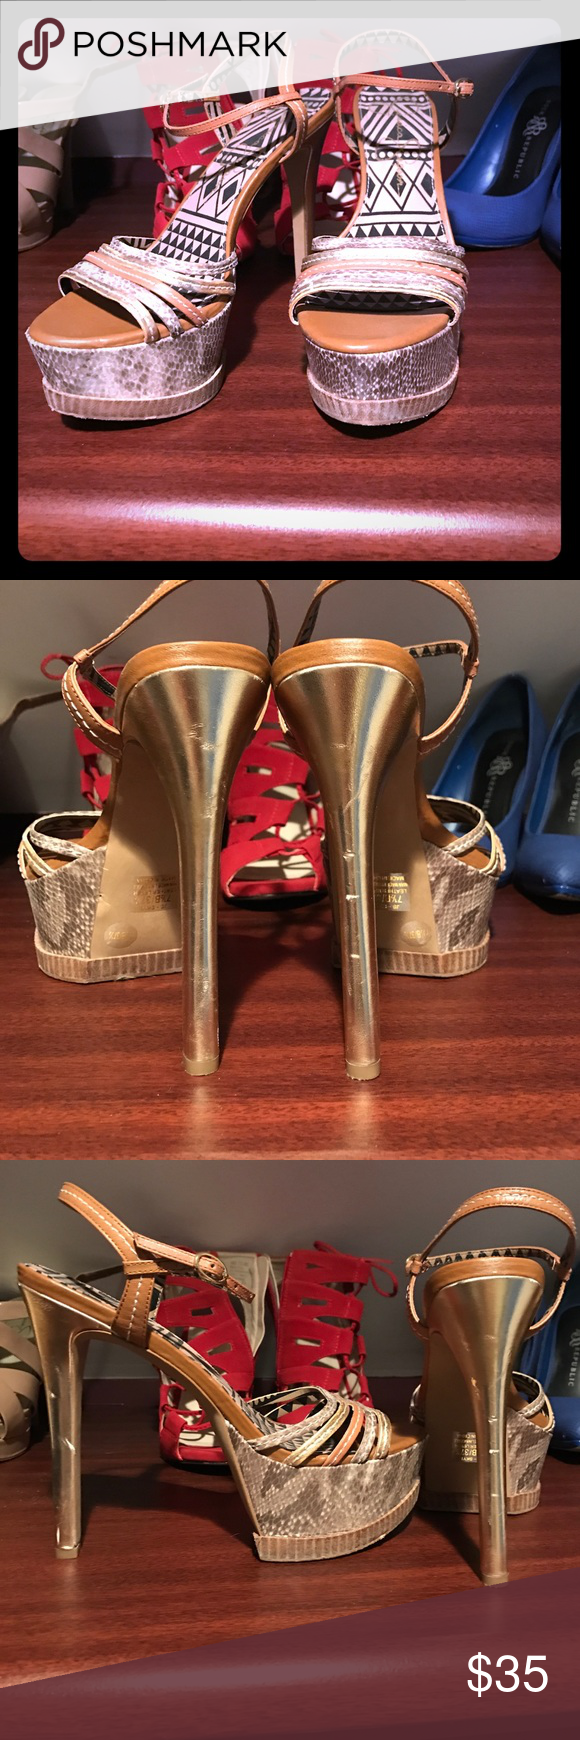 Jessica Simpson Heels These are high heeled sandals. They are tan with gold. There are a few blemishes that you can see in the images. Jessica Simpson Shoes Heels